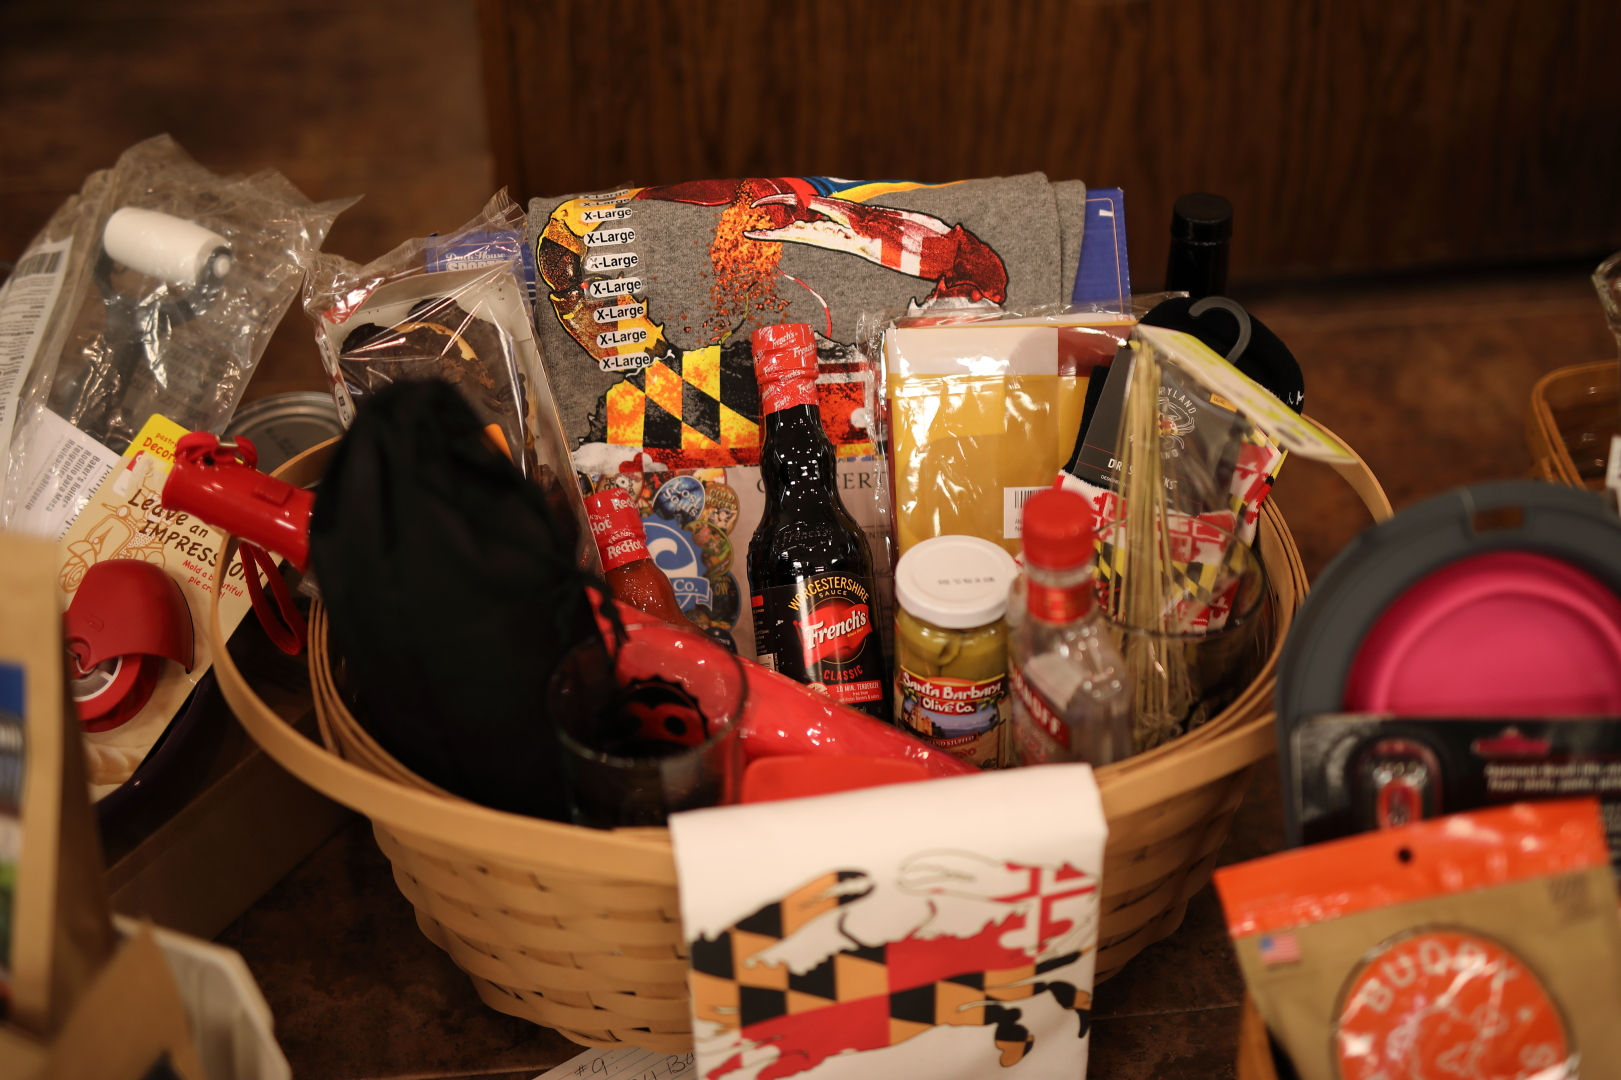 Maryland Longaberger basket with products from Maryland: cookies, mustard, seasoning, etc.